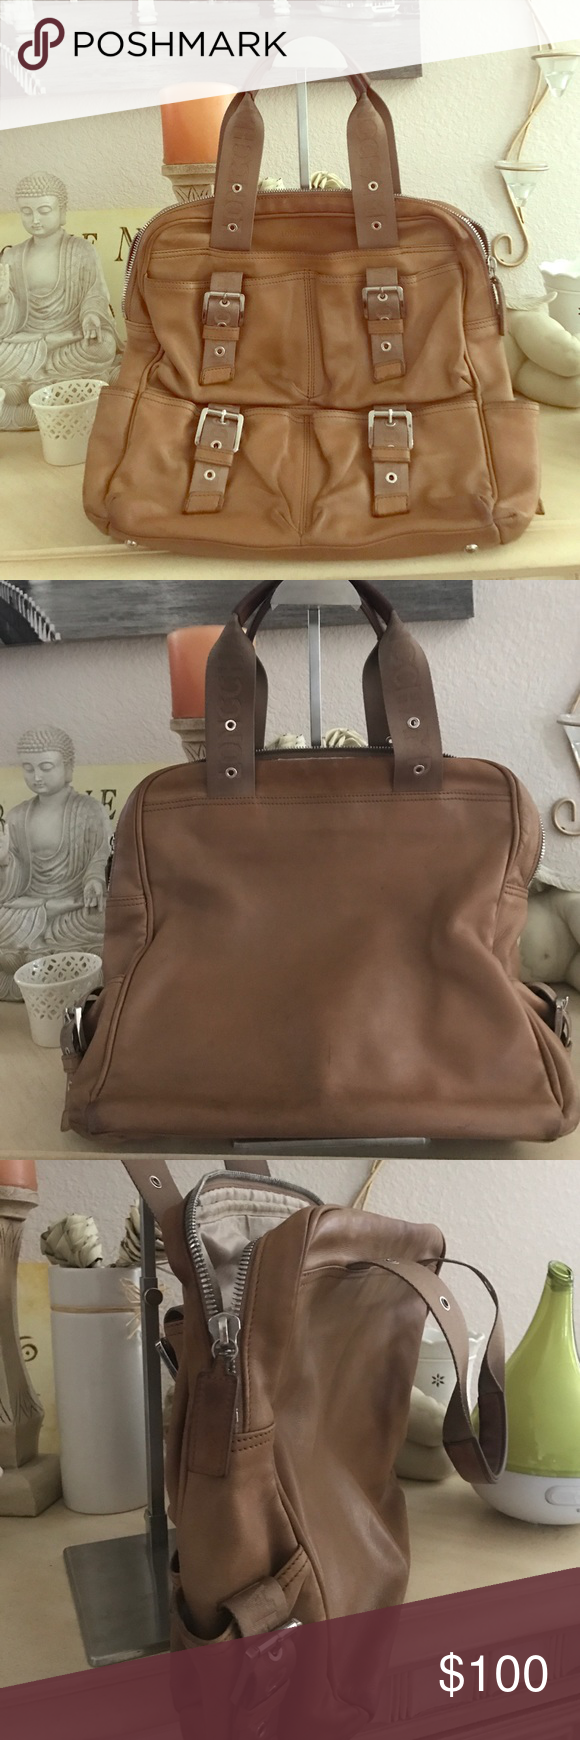 Longchamp Bag Good used condition with some water marks. Tan. Authentic purchased directly from department store. Longchamp Bags